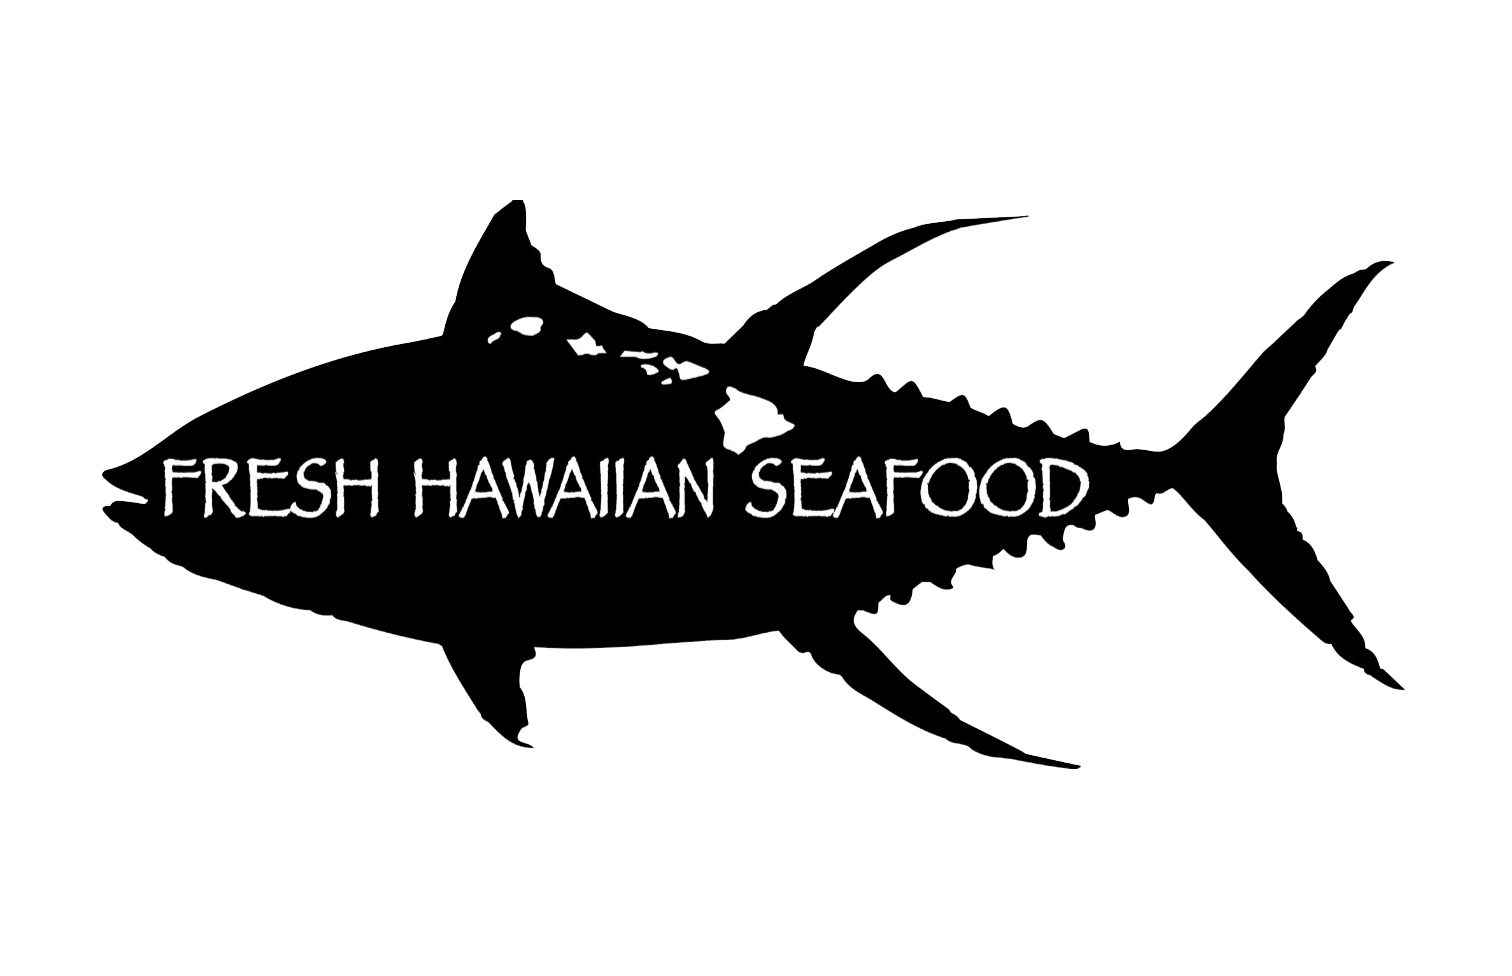 Fresh Hawaiian Seafood